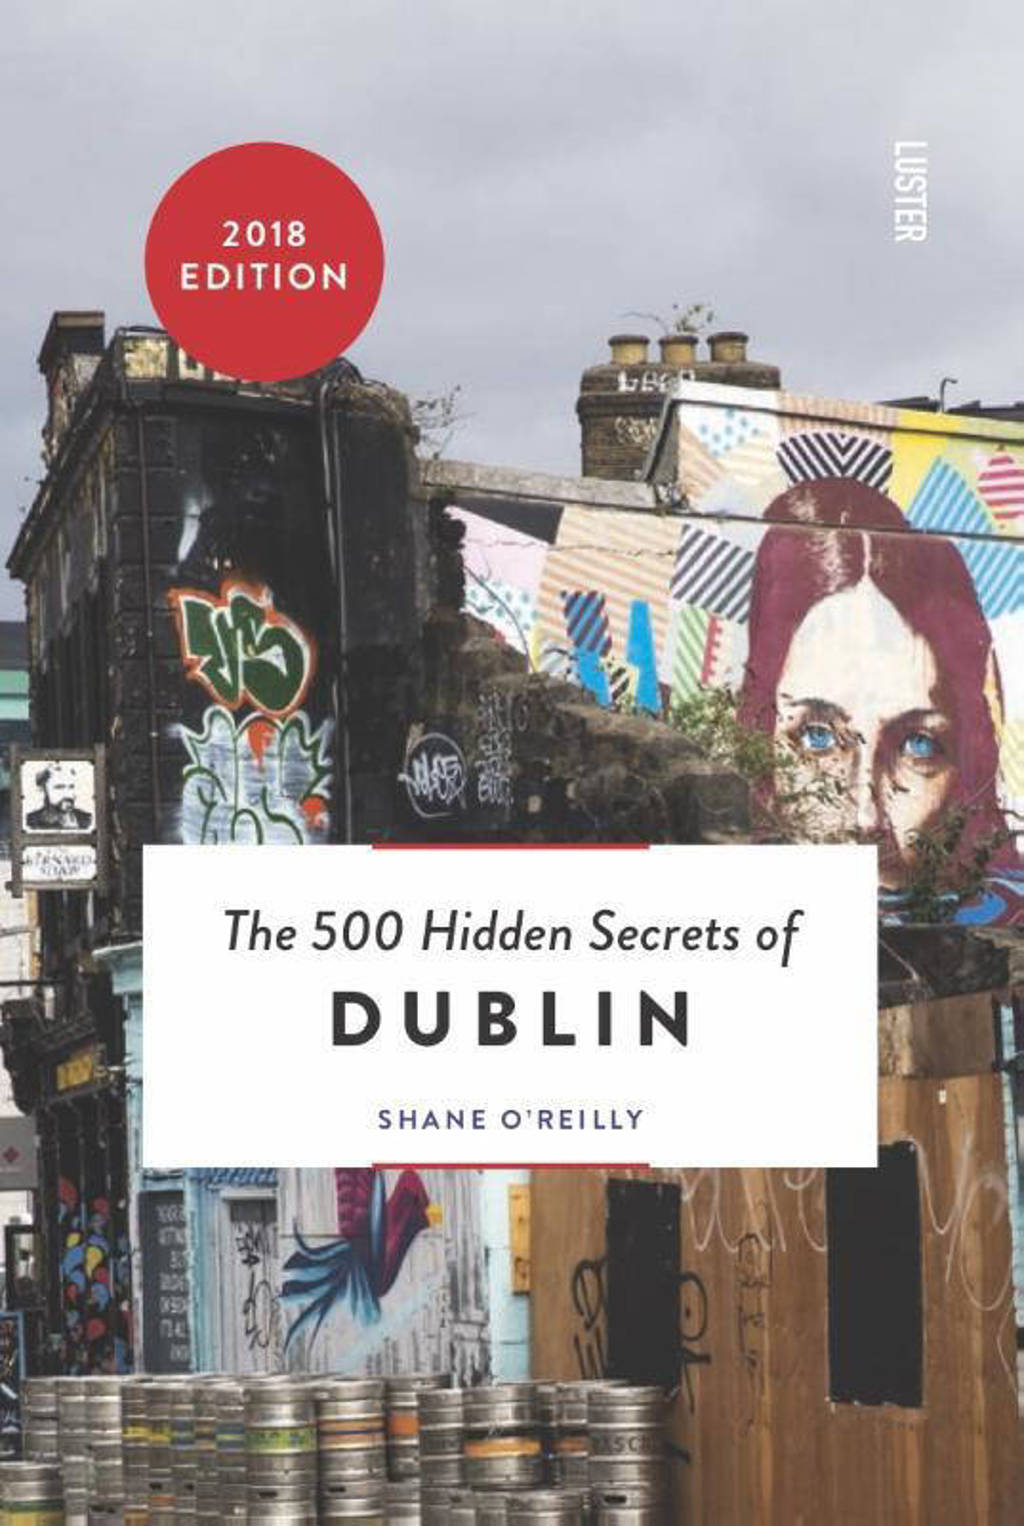 The 500 Hidden Secrets: The 500 hidden secrets of Dublin - Shane O'Reilly